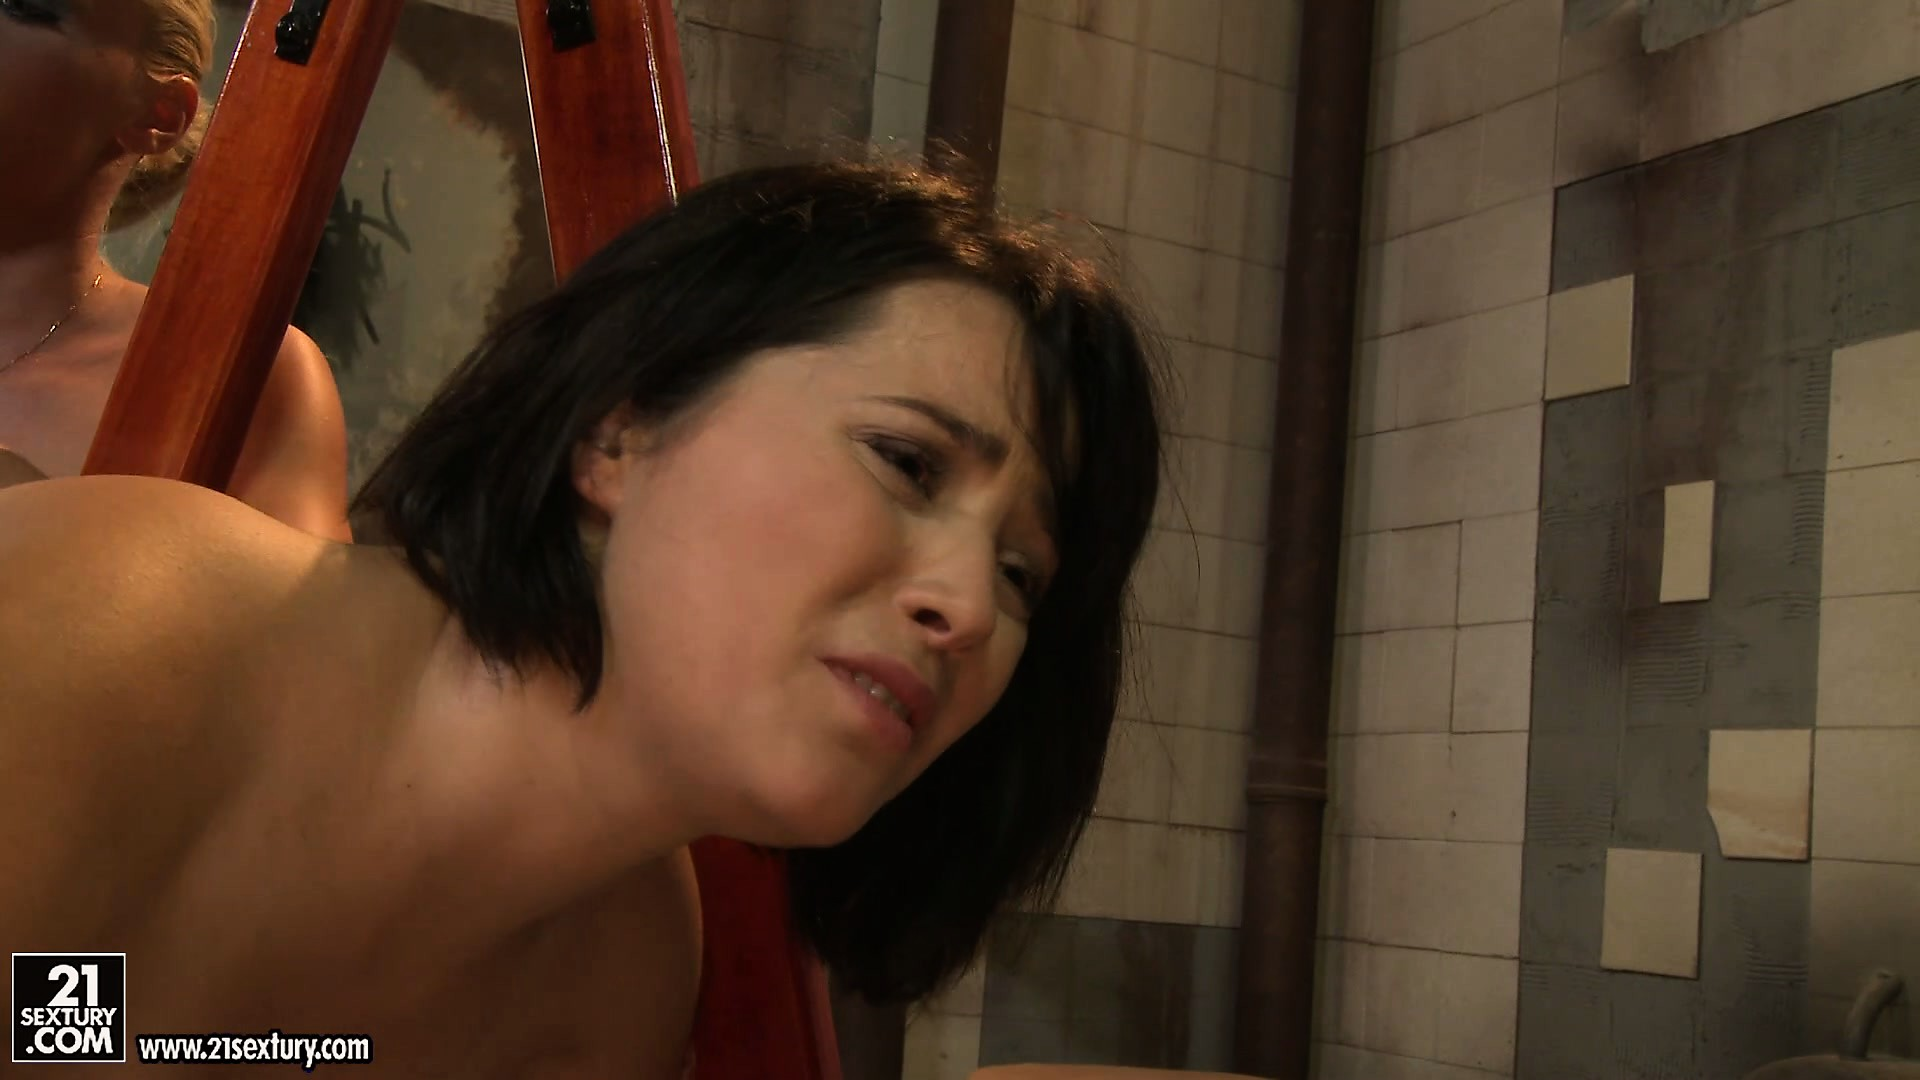 Porn Tube of Innocent Brunette Looks Really Pissed Of When She's Being Spanked